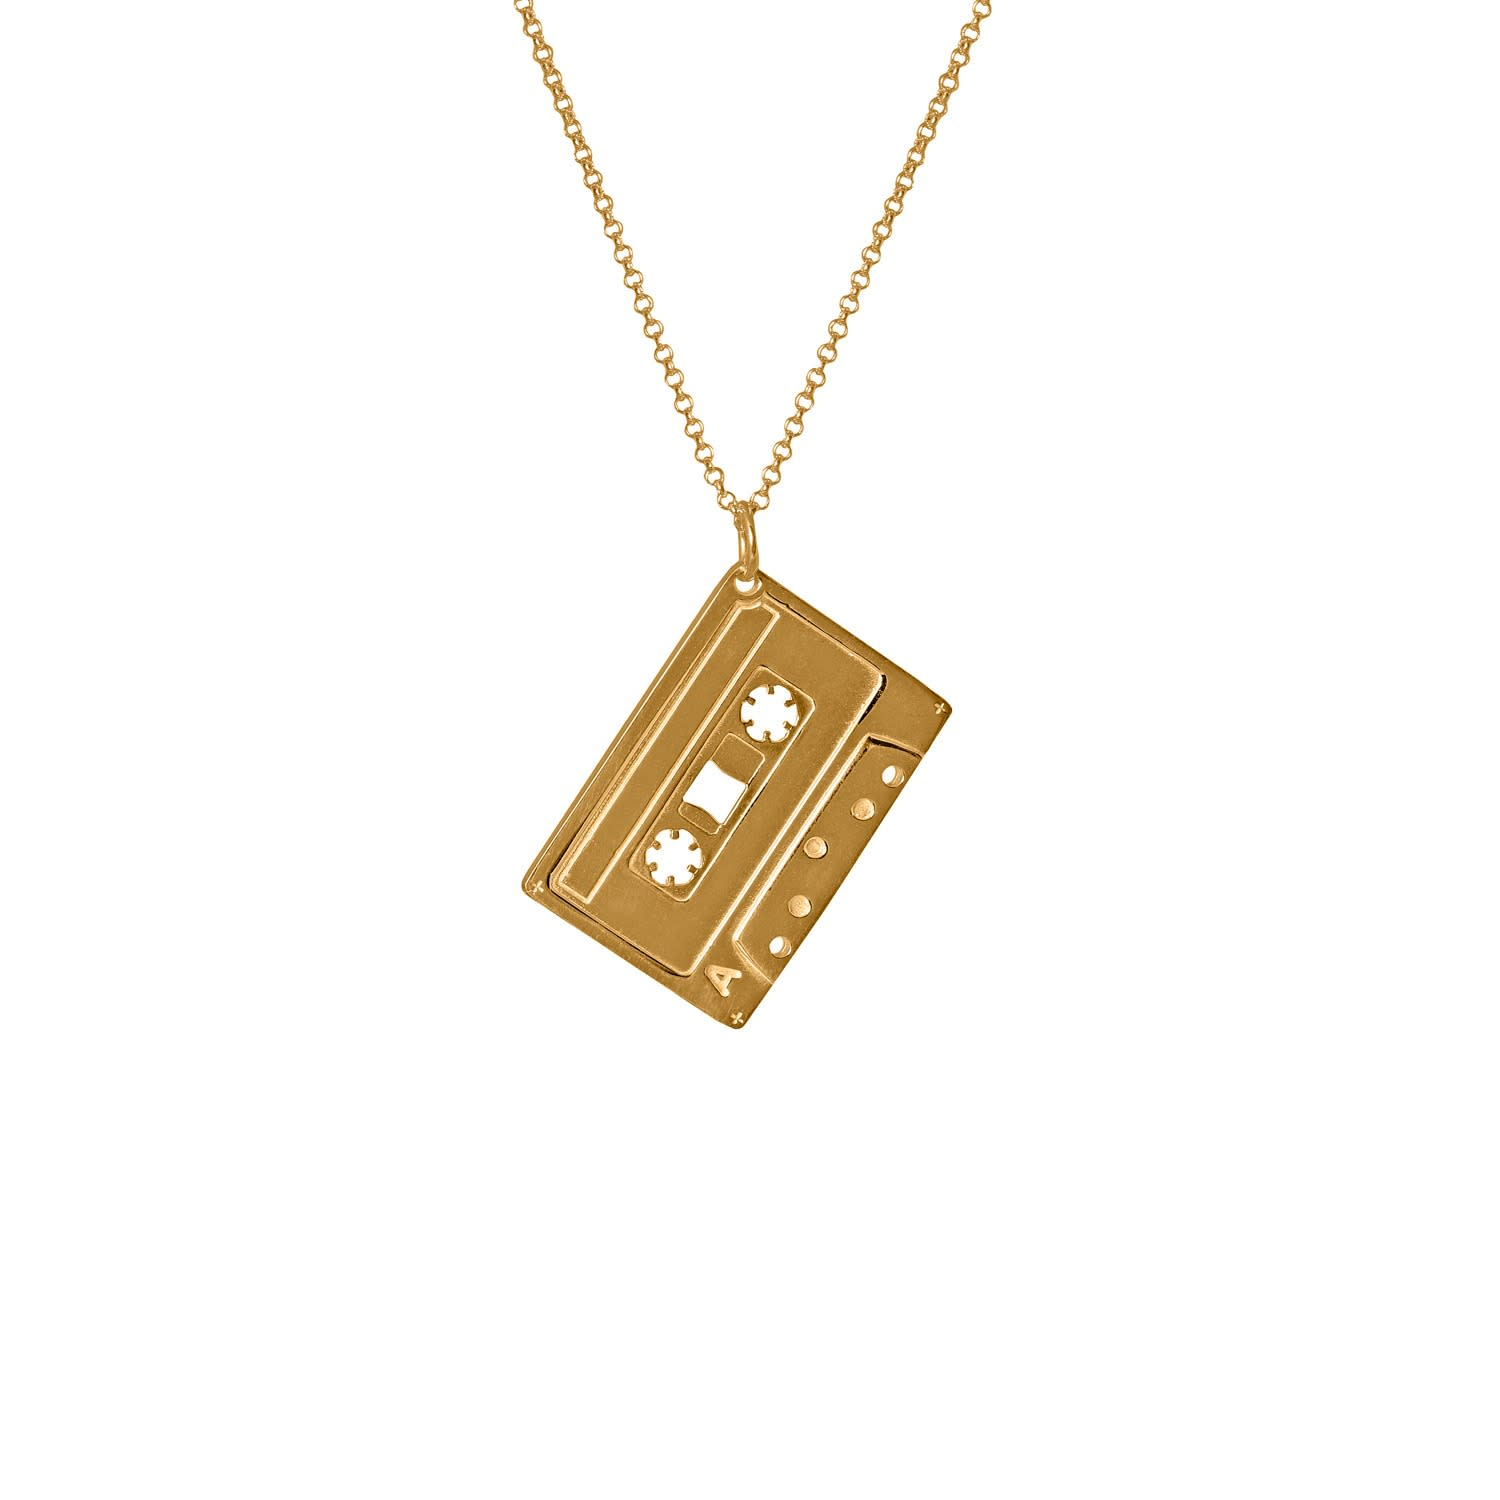 mens jewelry  230 gold necklace for men Gold necklace mens necklace,gold filled necklace chain necklace